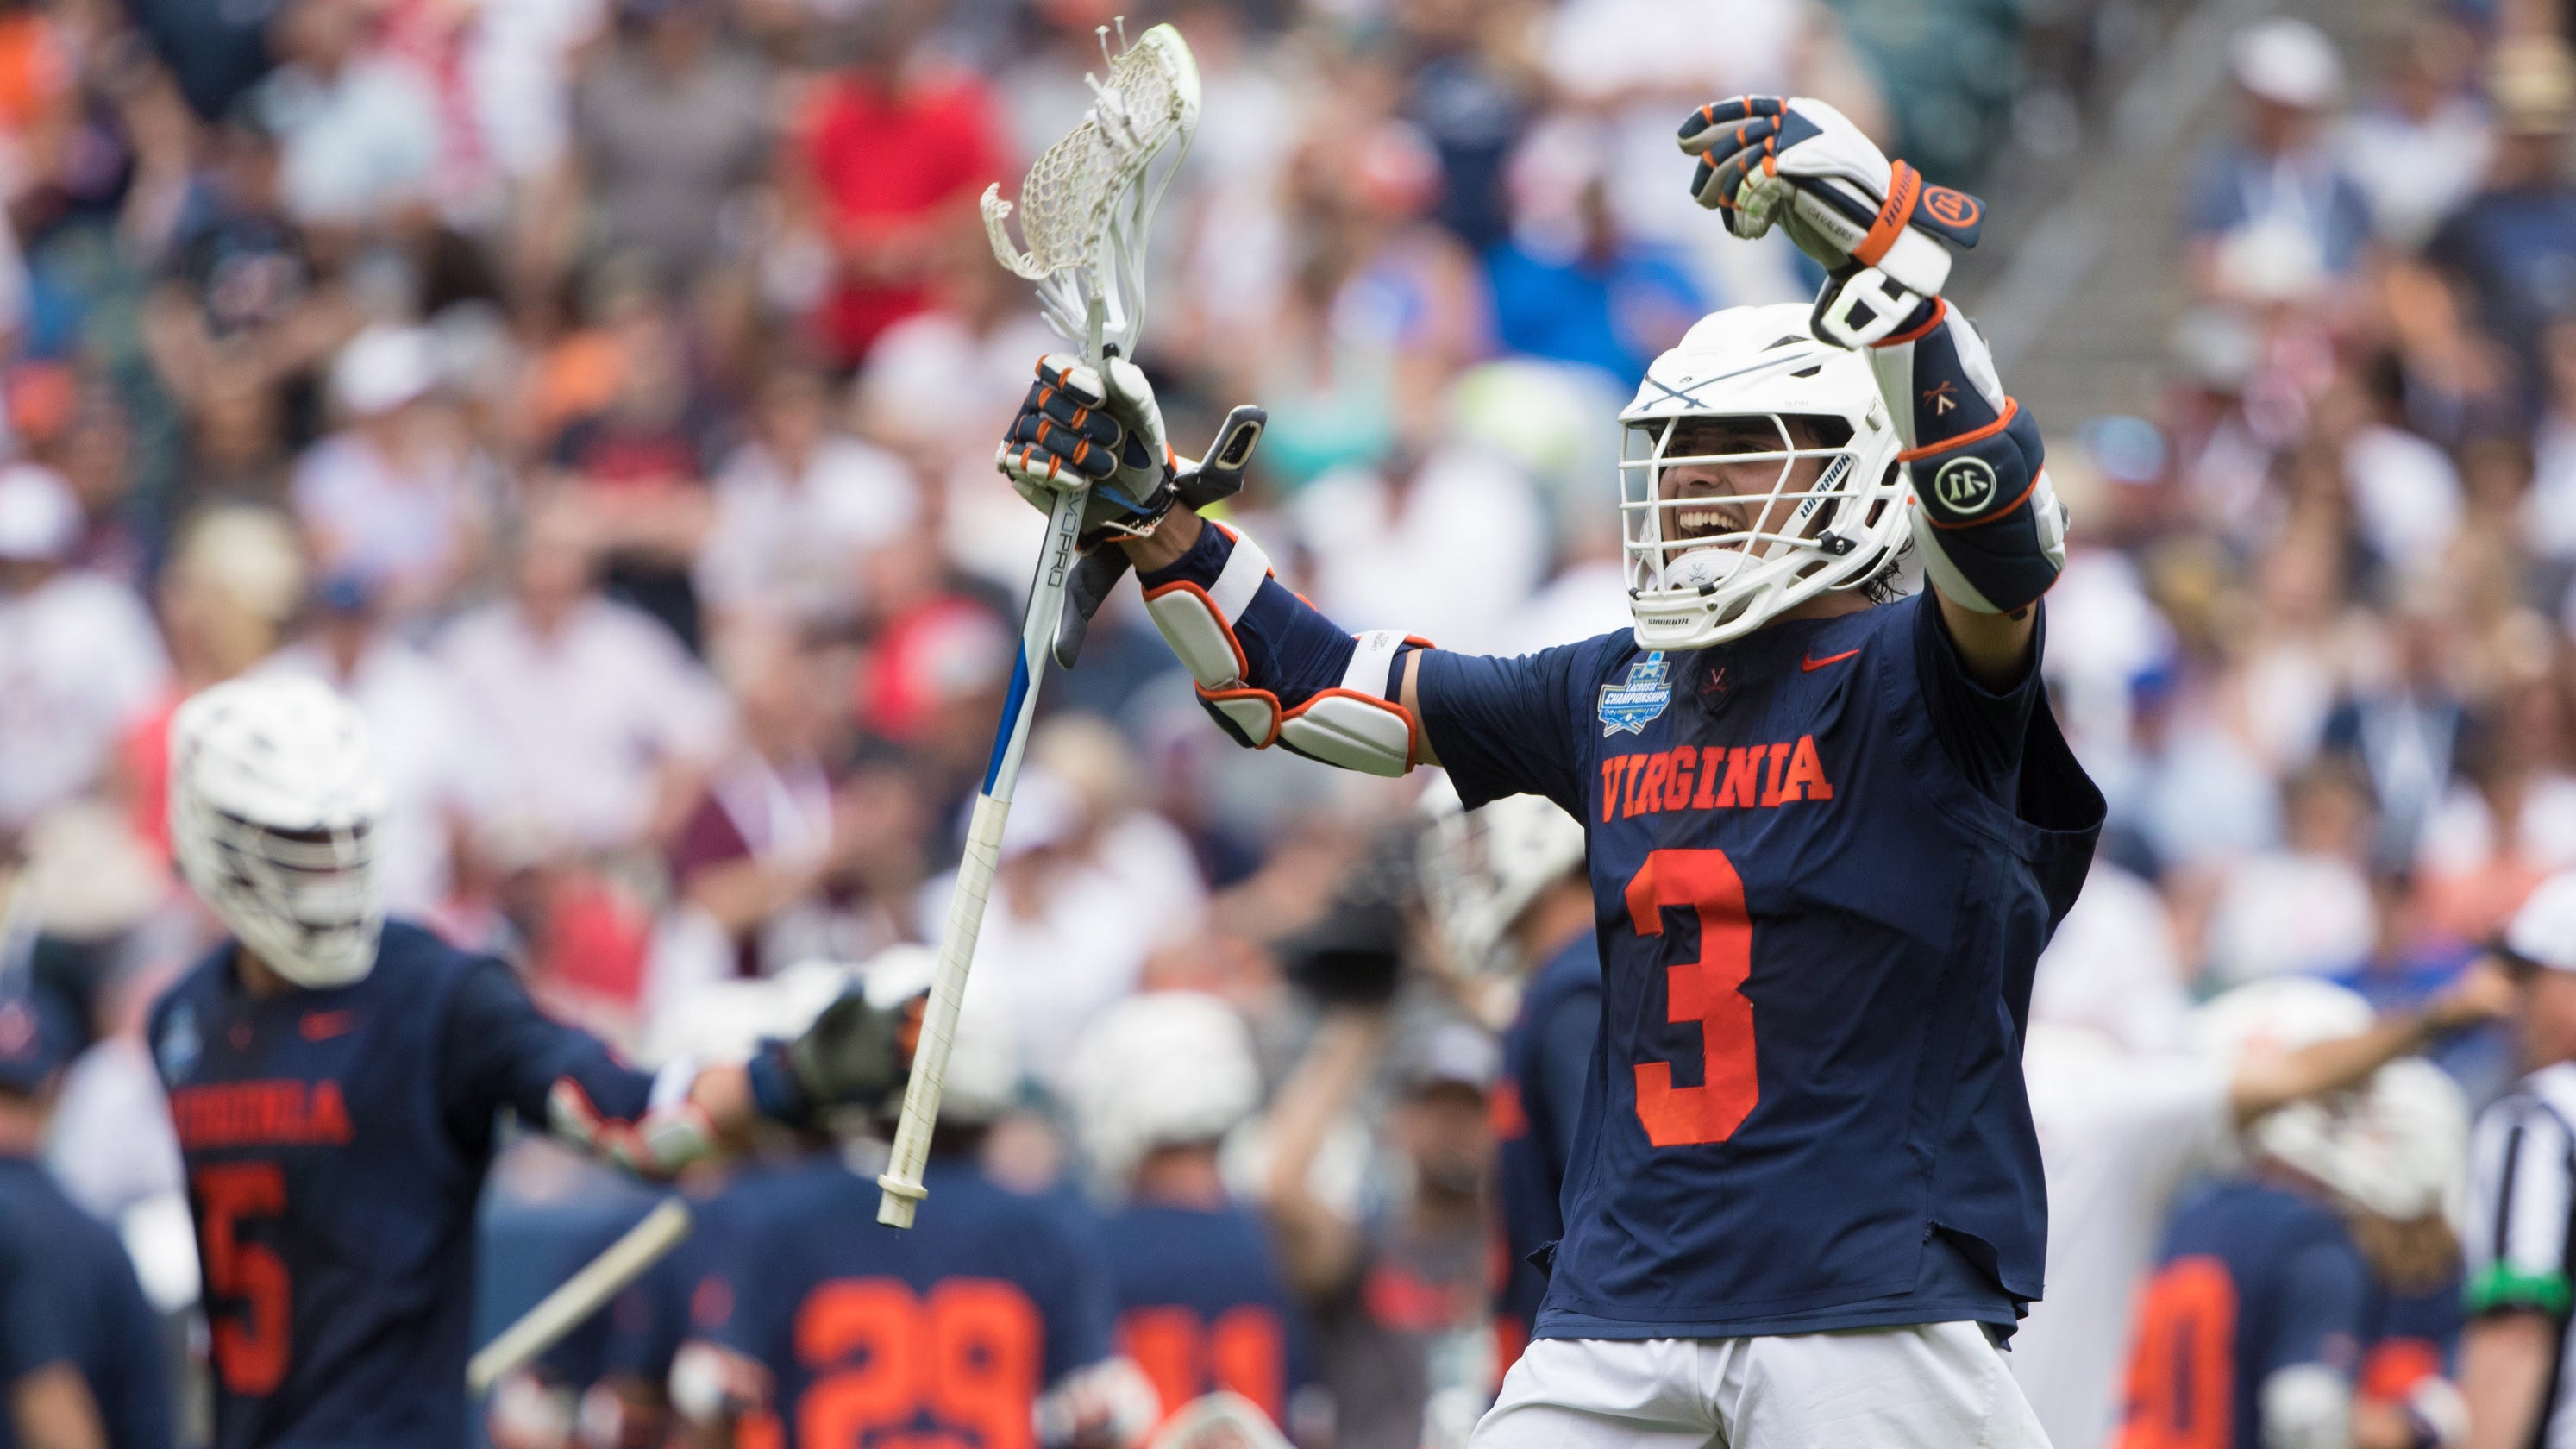 Virginia rallies, upends Duke in double overtime to reach NCAA championship game